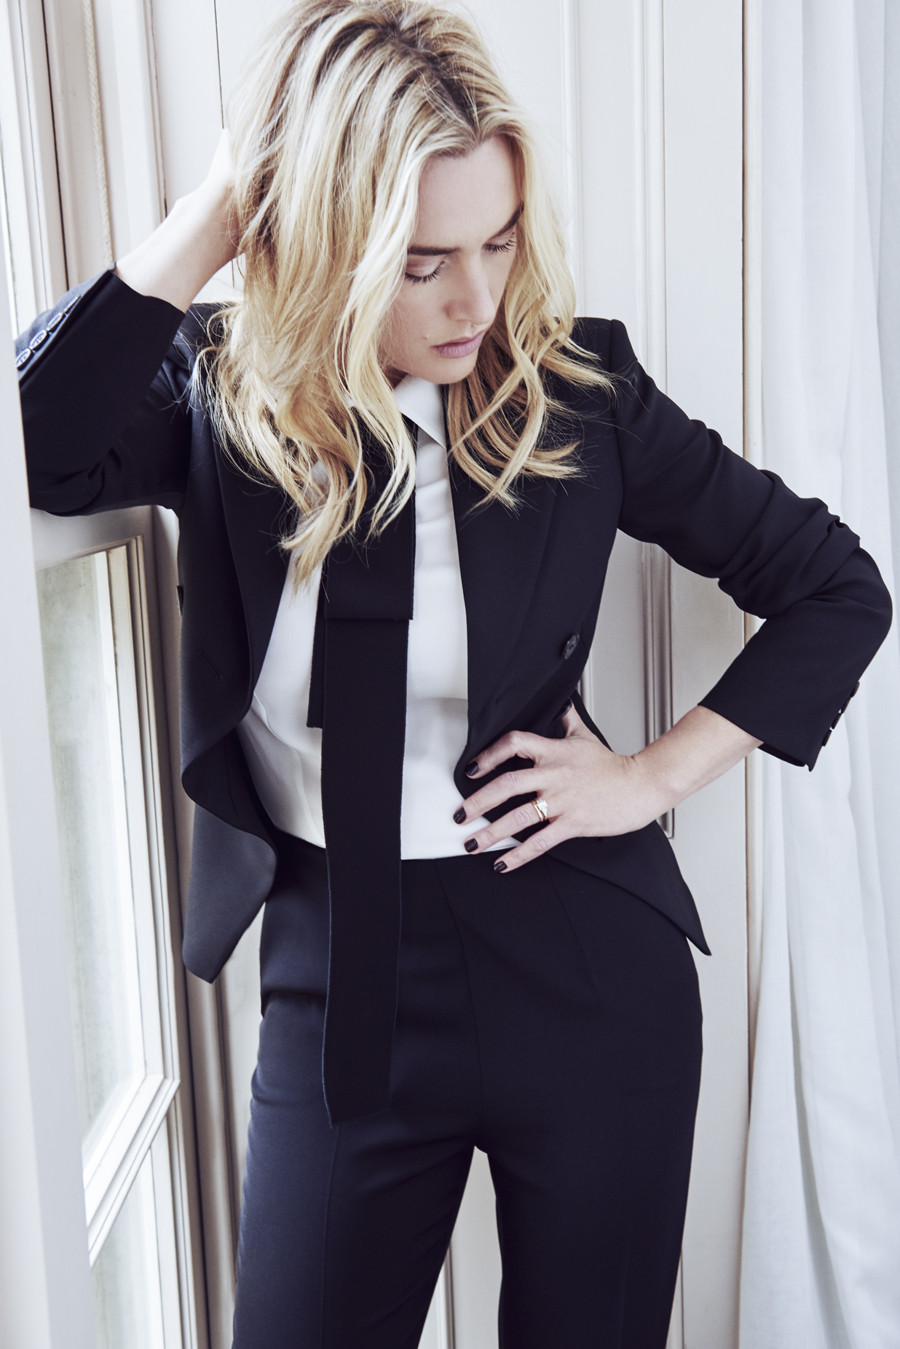 Kate Winslet, by Frederic Auerbach for Gotham magazine